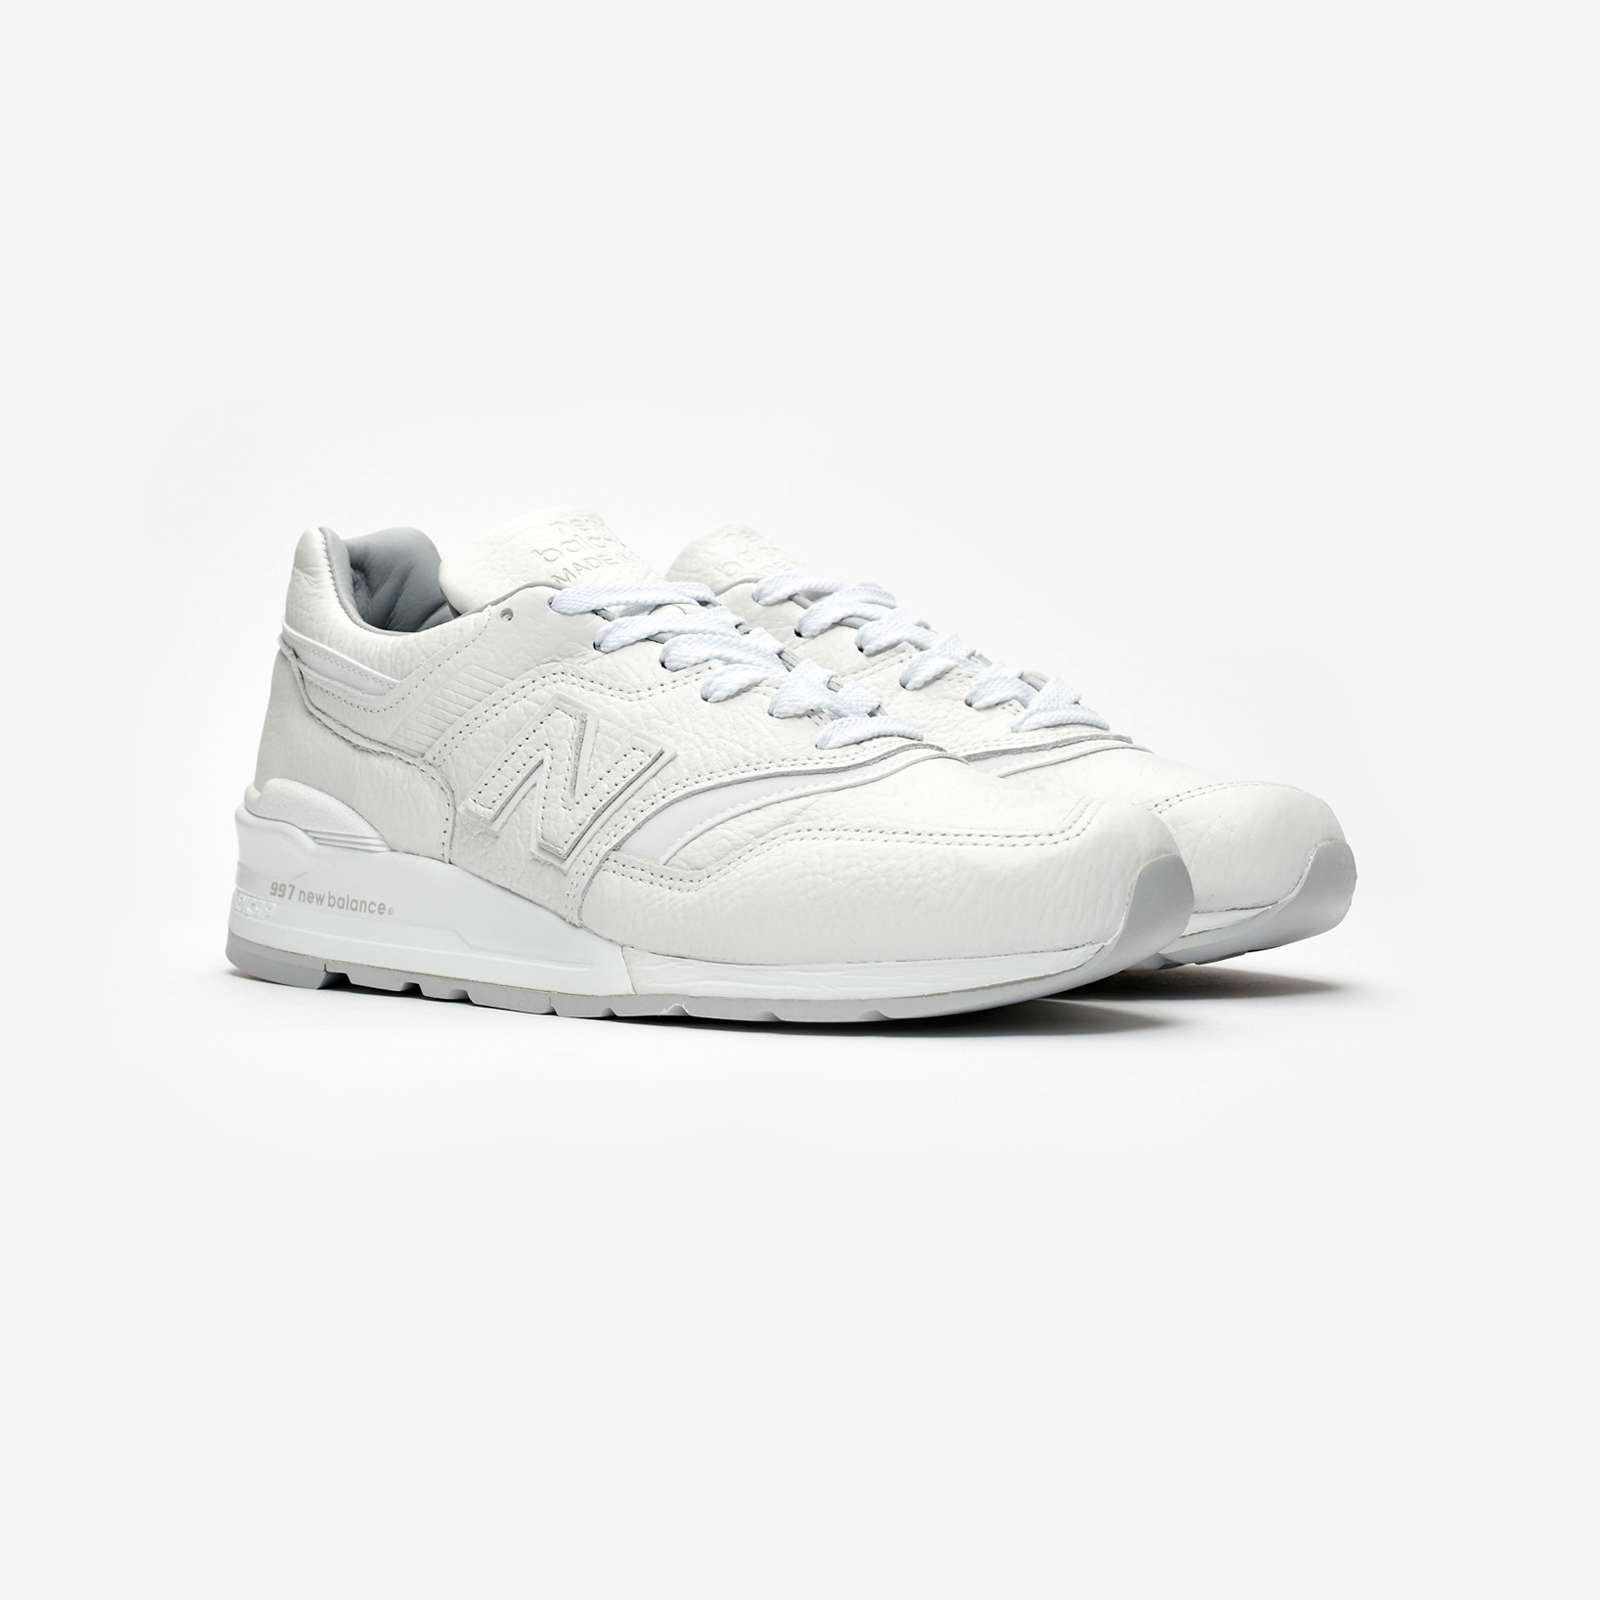 info for 40a1e 48f20 New Balance M997 - M997bsn - Sneakersnstuff   sneakers ...